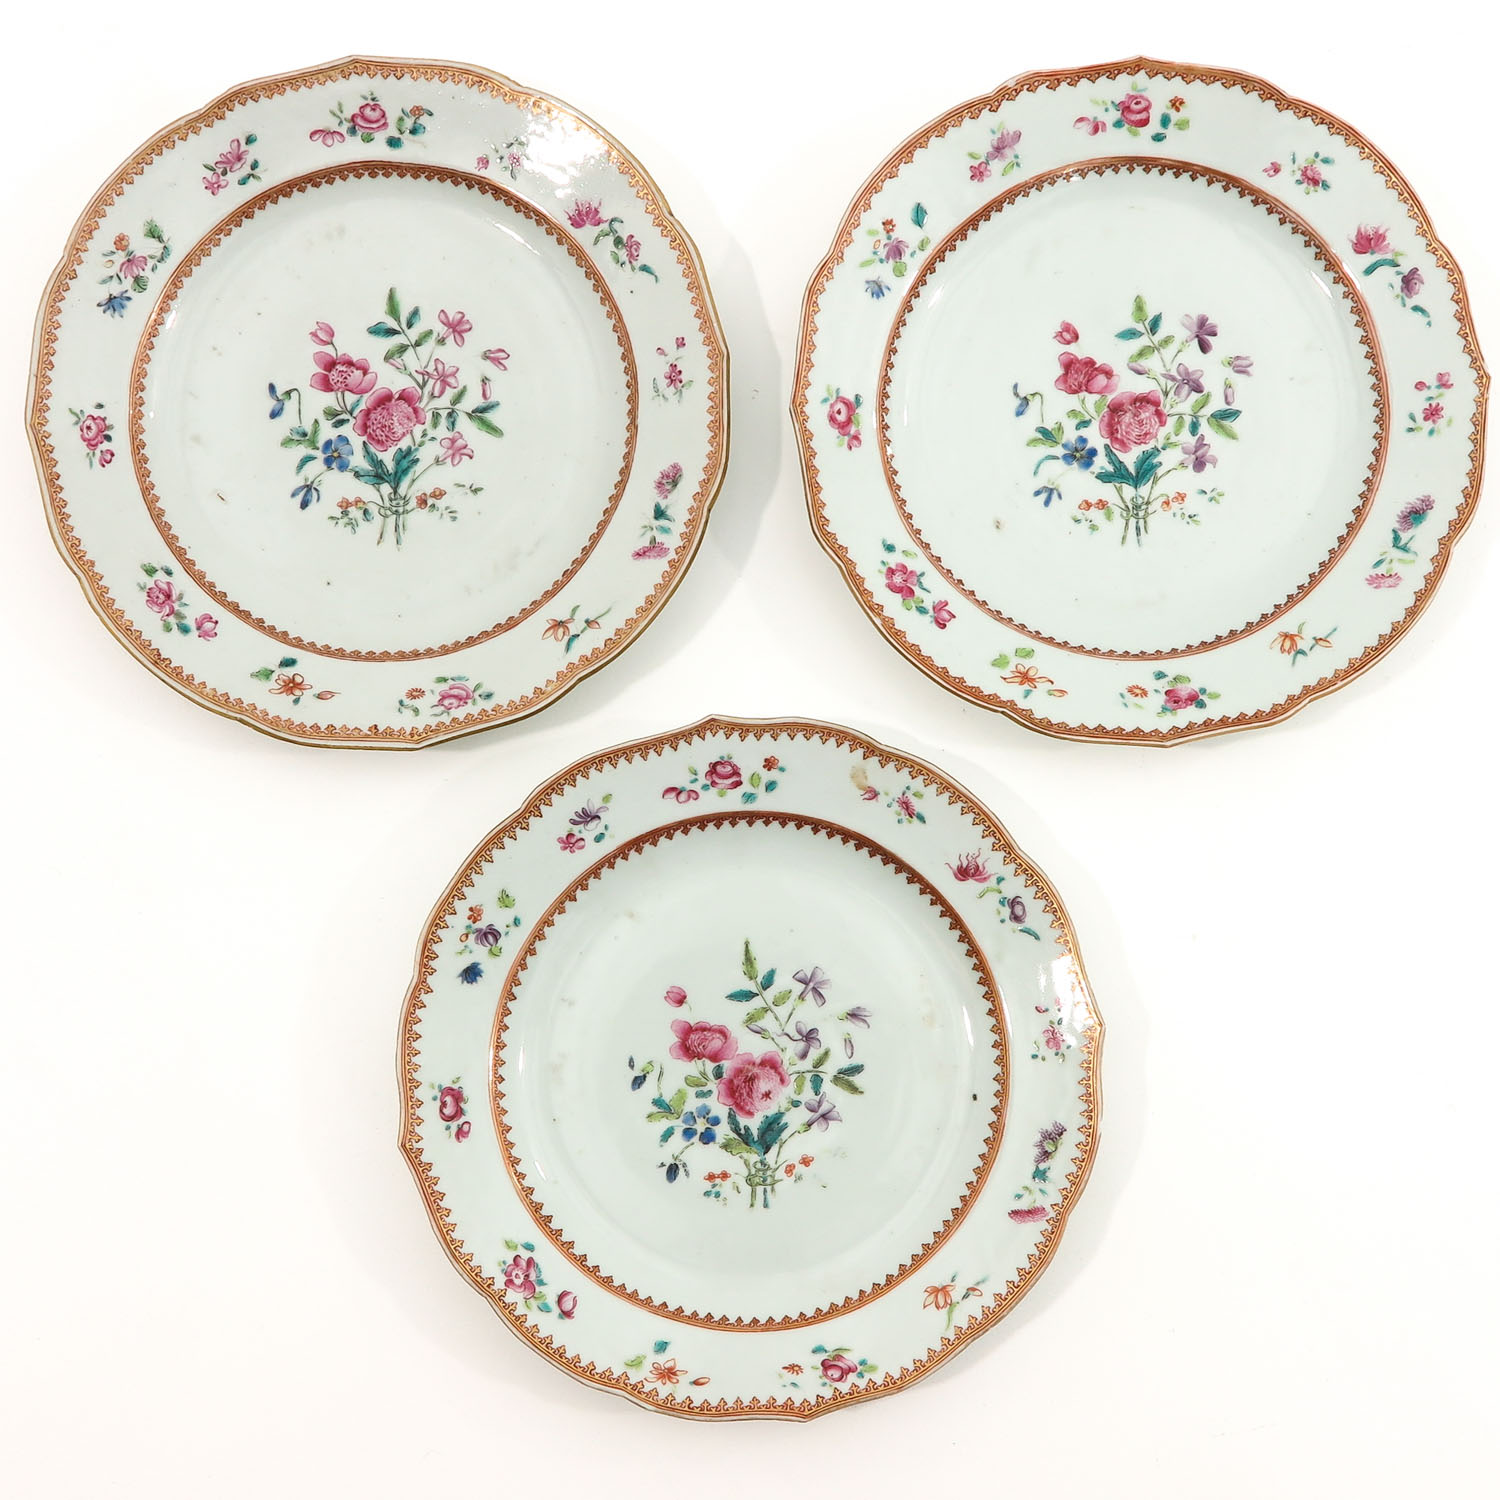 A Series of 8 Famille Rose Plates - Image 5 of 10